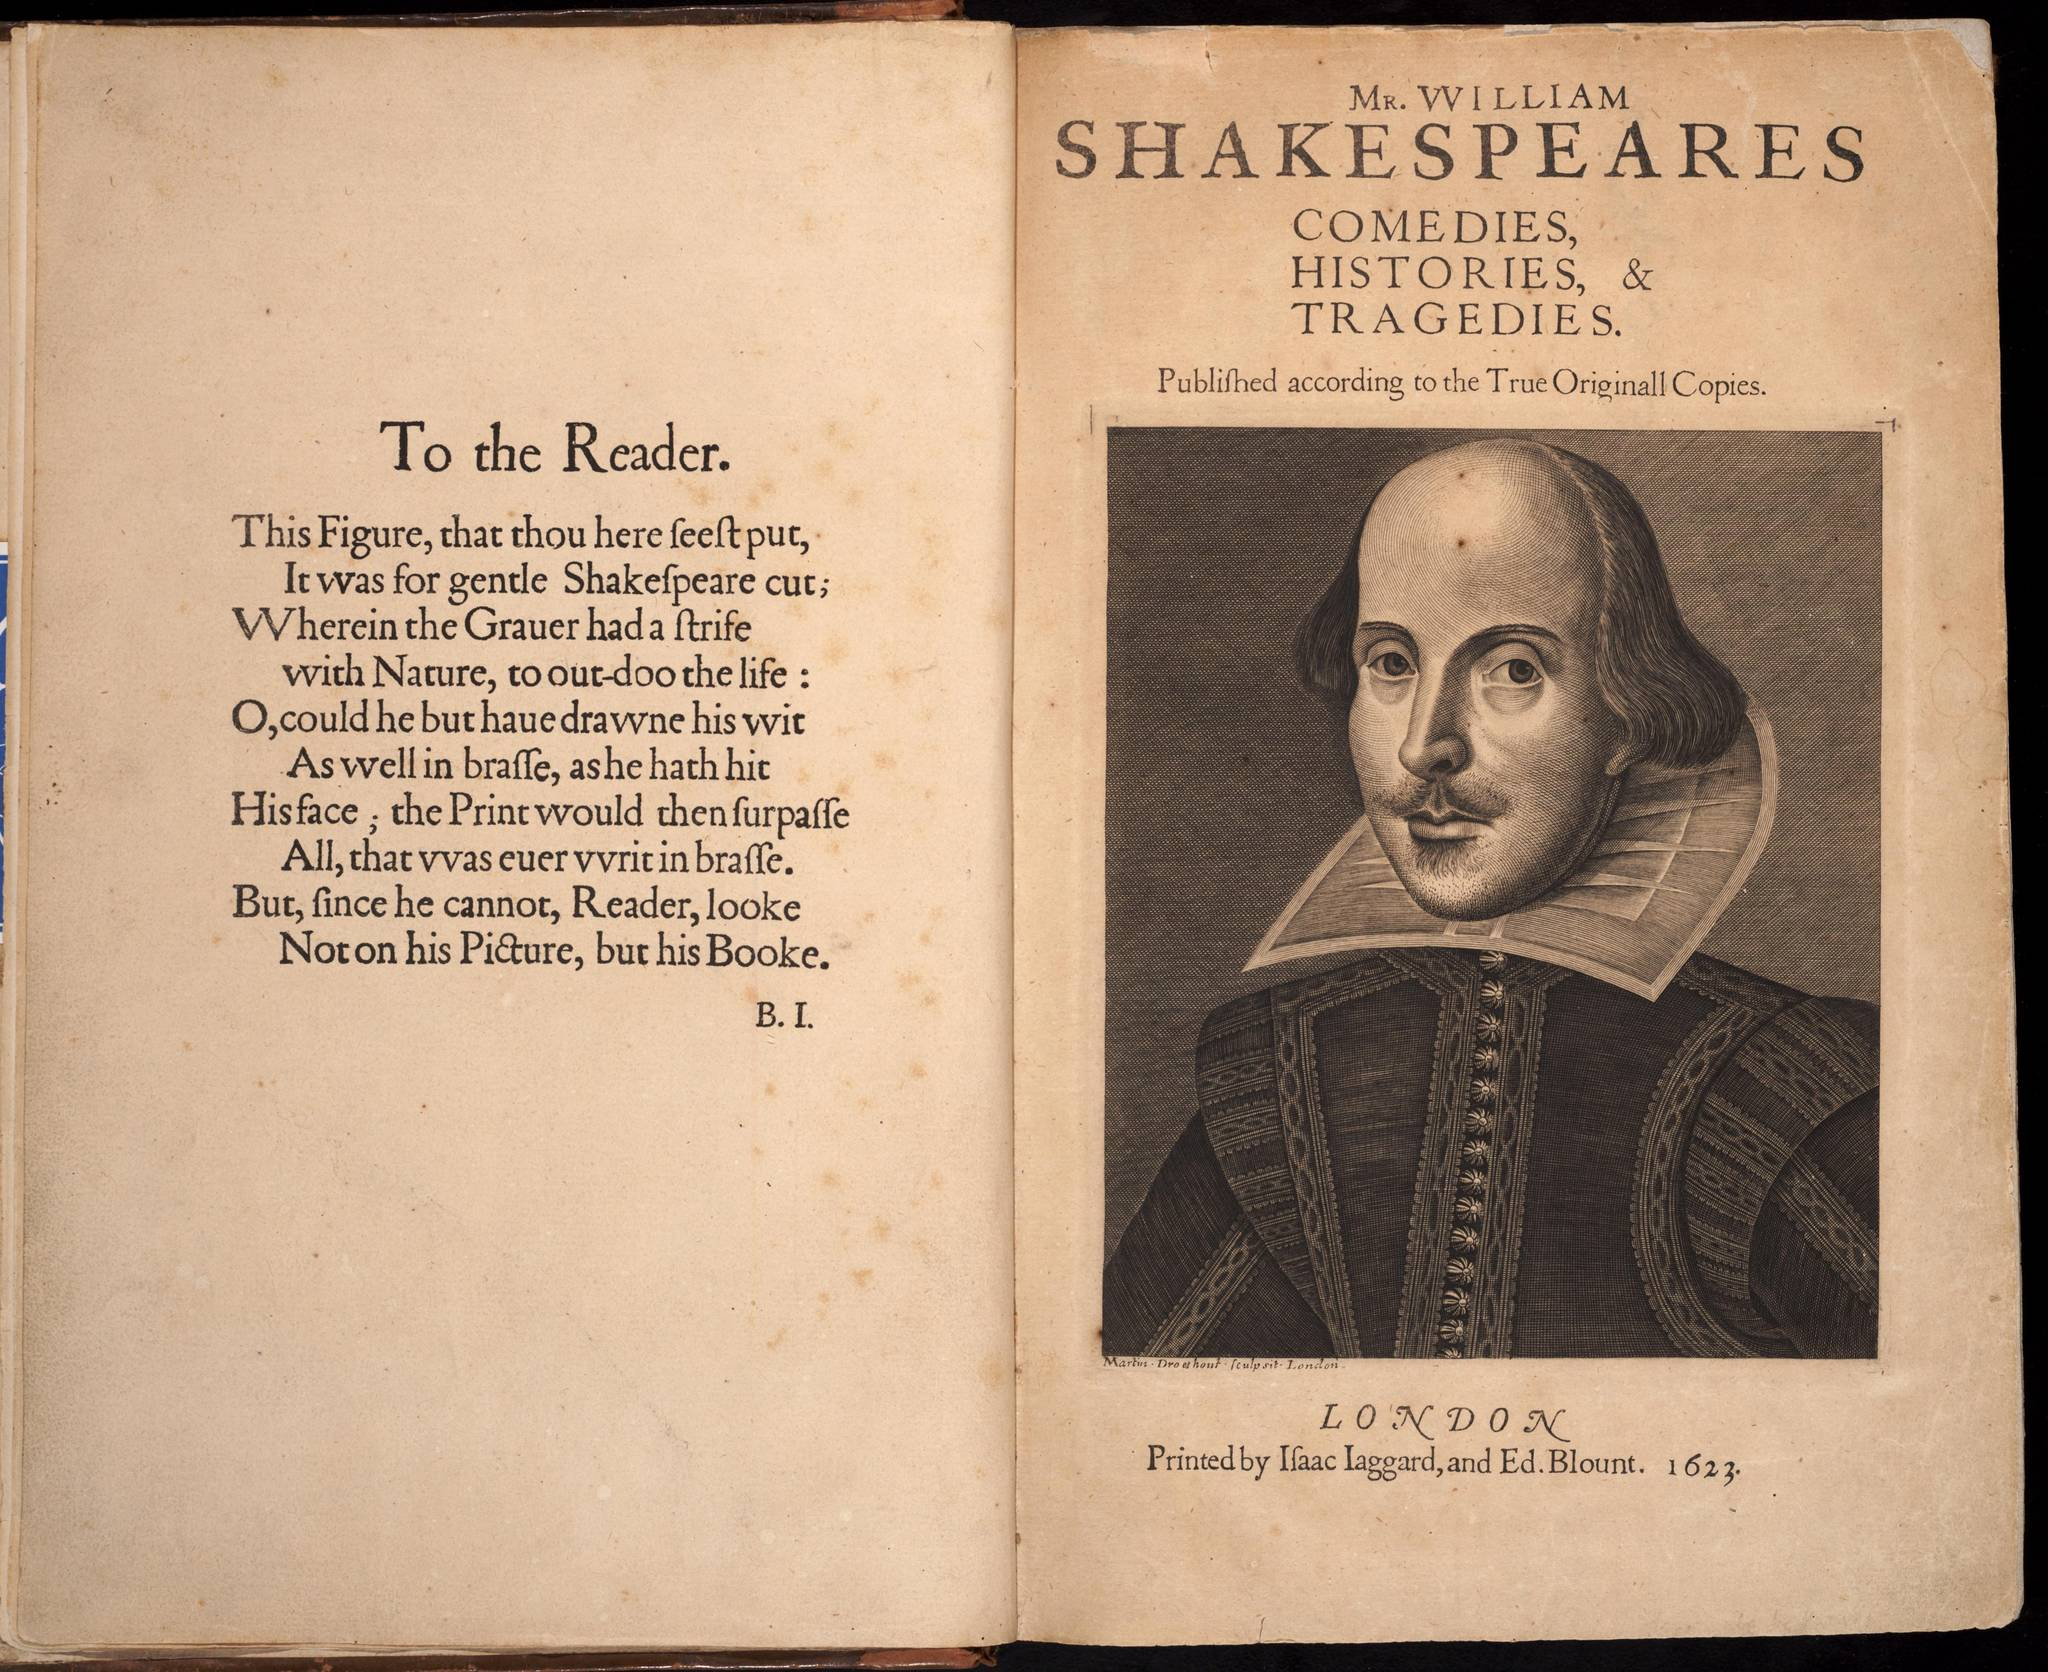 william shakespear essay William shakespeare was a great english playwright, dramatist and poet who lived during the late sixteenth and early seventeenth centuries shakespeare is considered to be the greatest playwright.